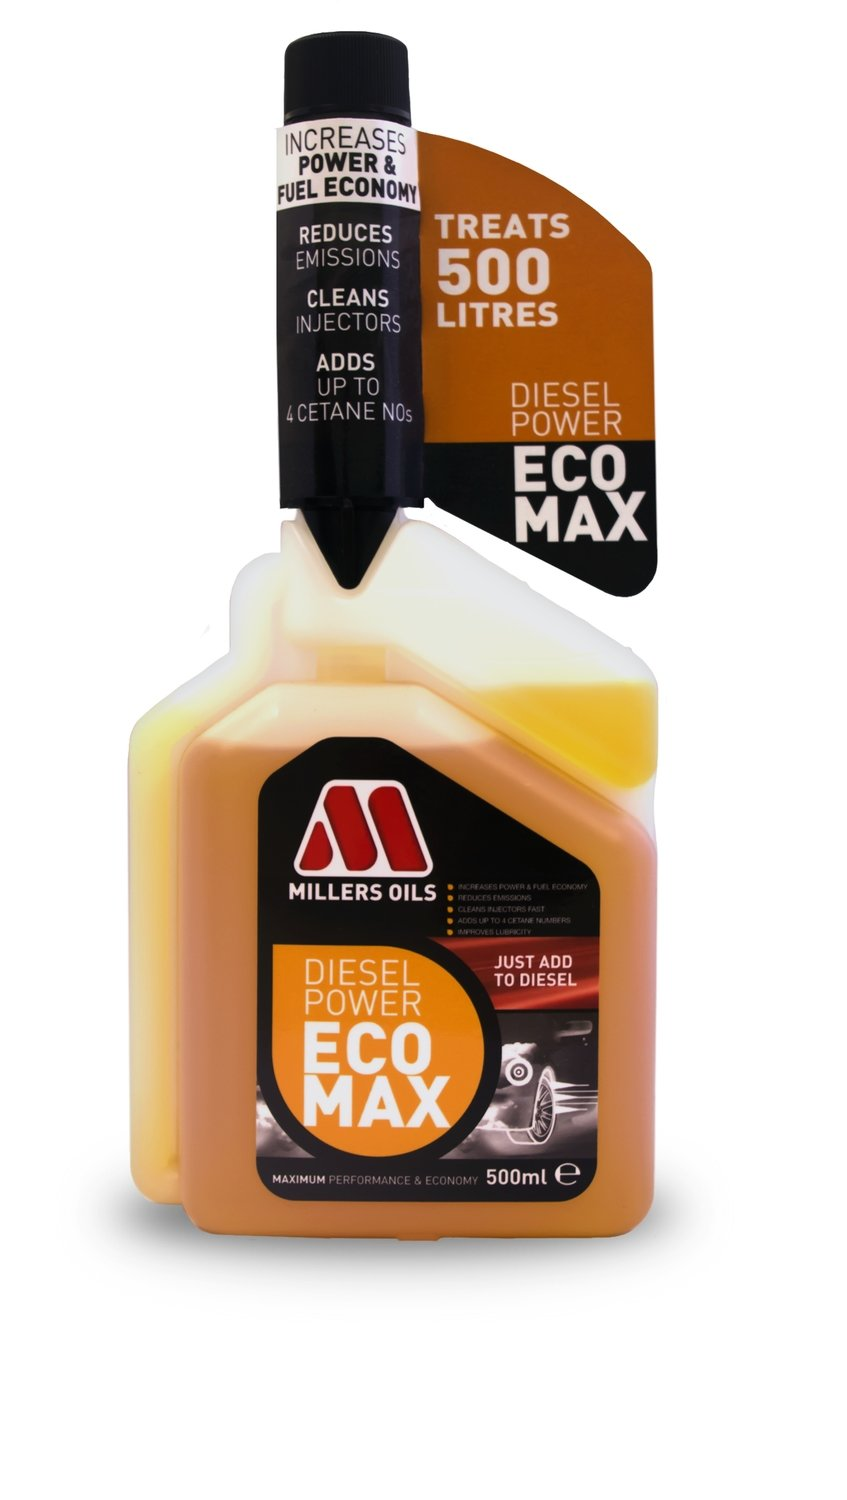 MIllers Oils Diesel Power ECOMAX multi-dose